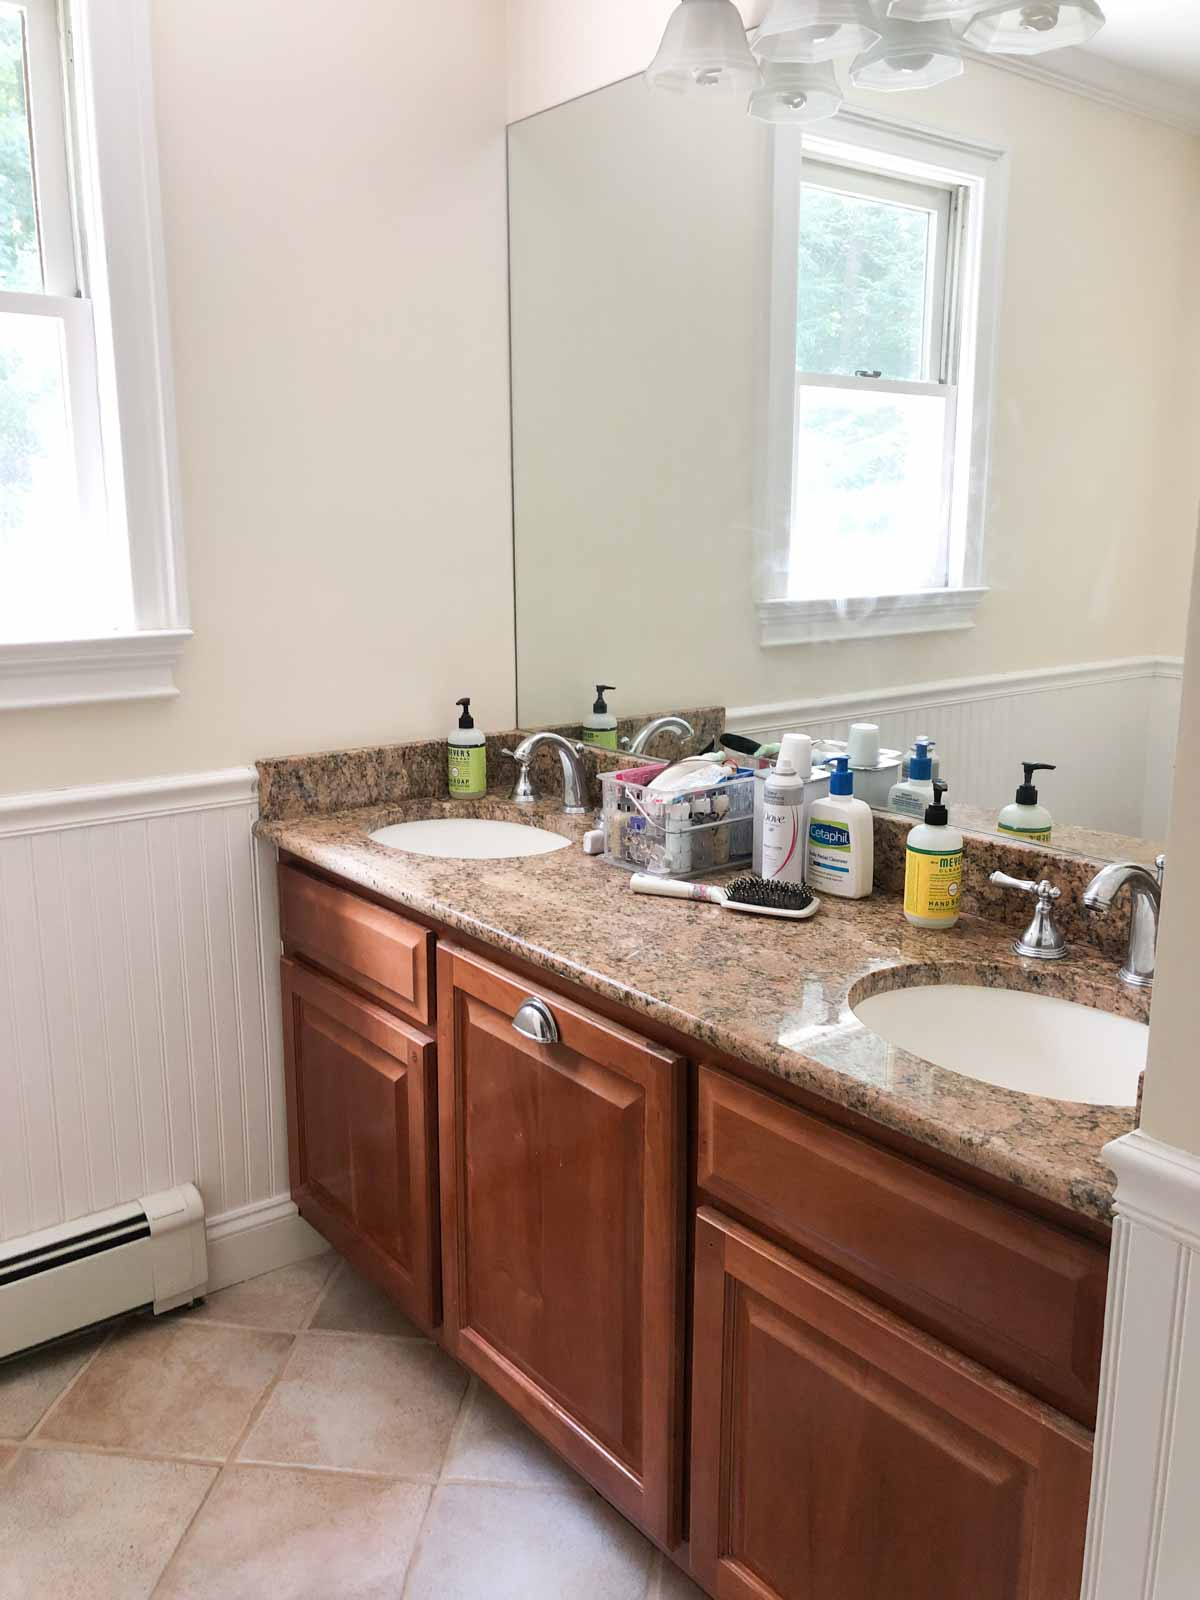 Home remodel: Our kids' bathroom before remodeling!